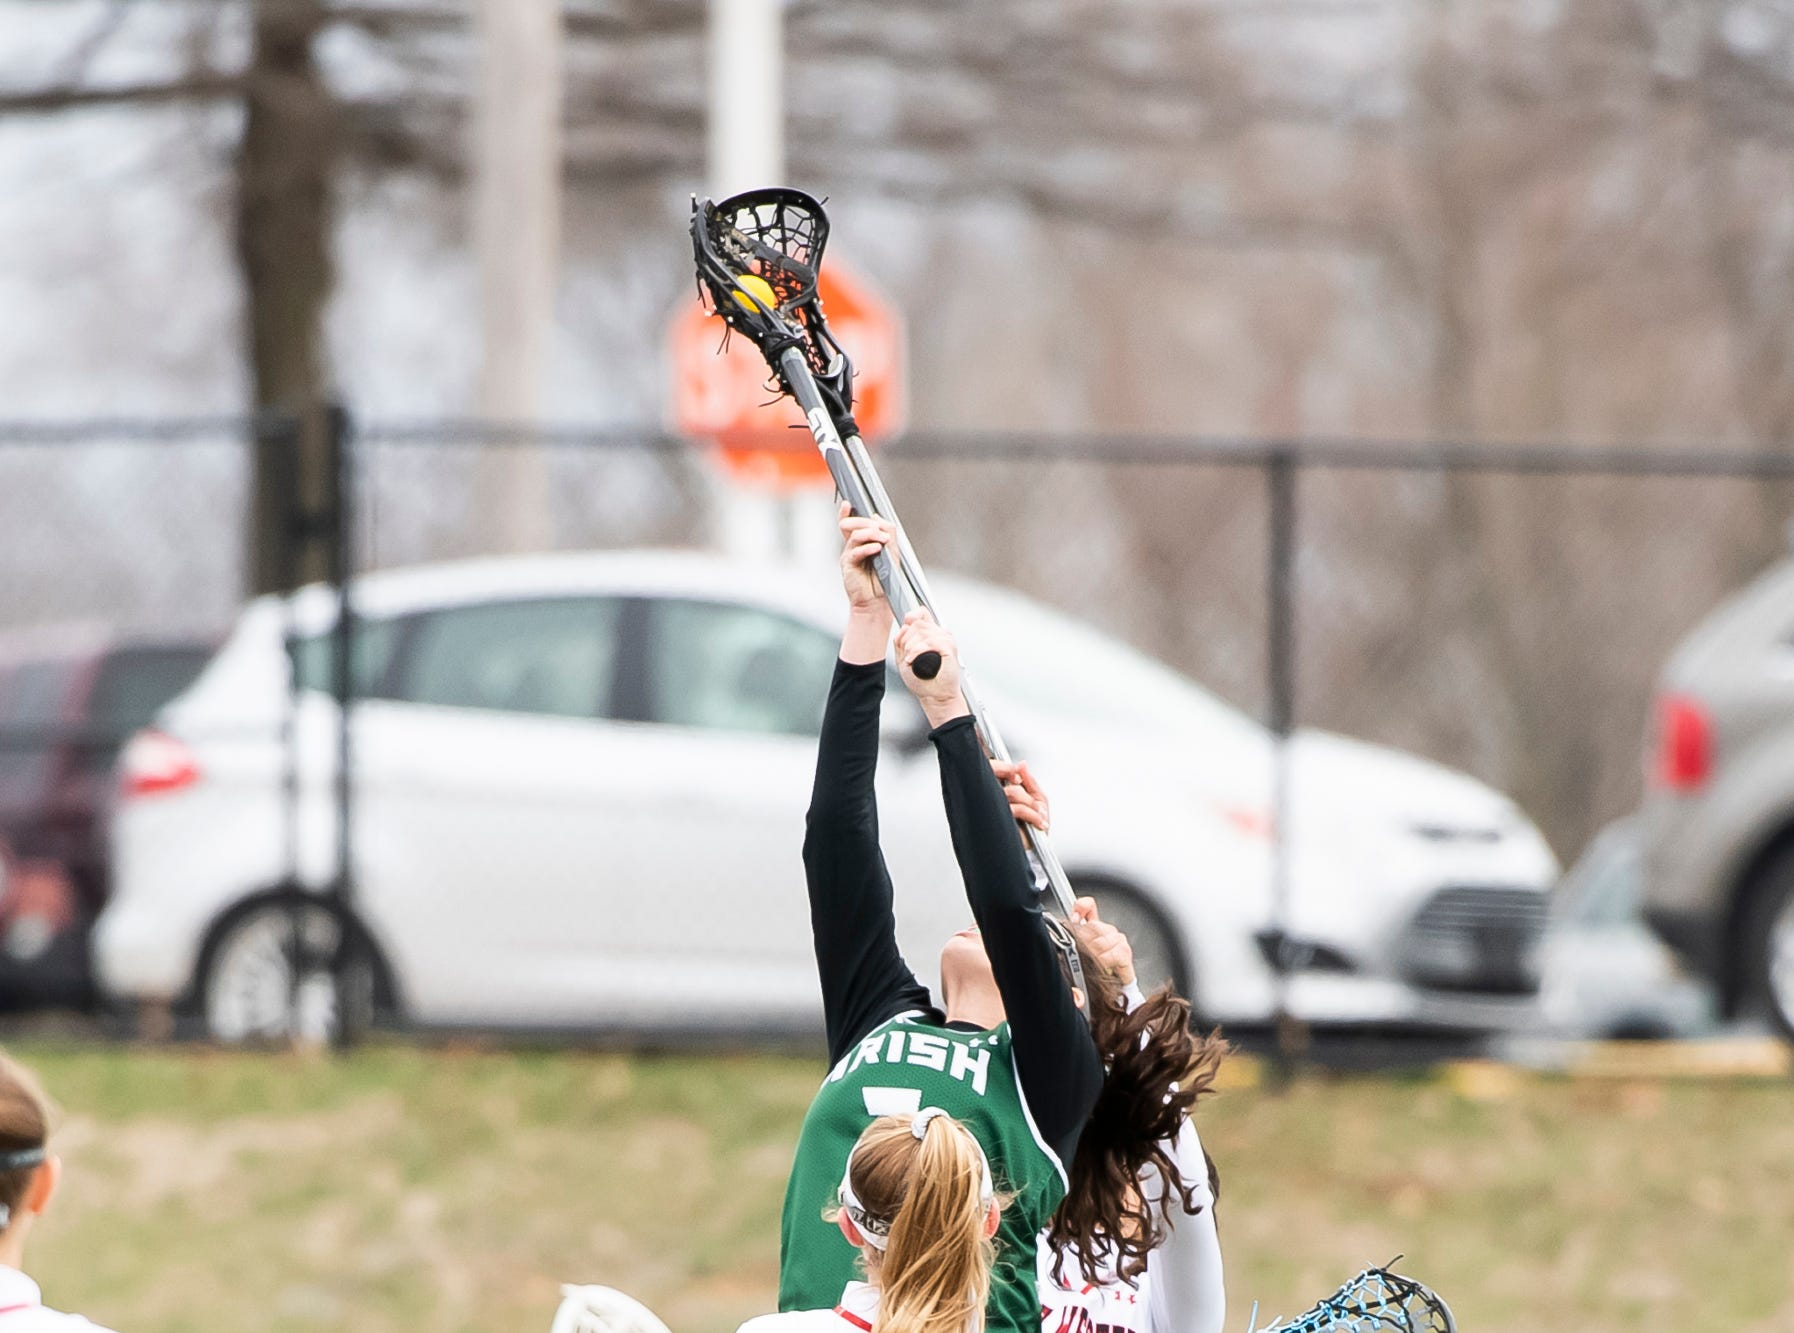 York Catholic wins a face-off during a YAIAA lacrosse game against South Western in Hanover on Tuesday, April 2, 2019. York Catholic won 19-7 and improved to 5-0.